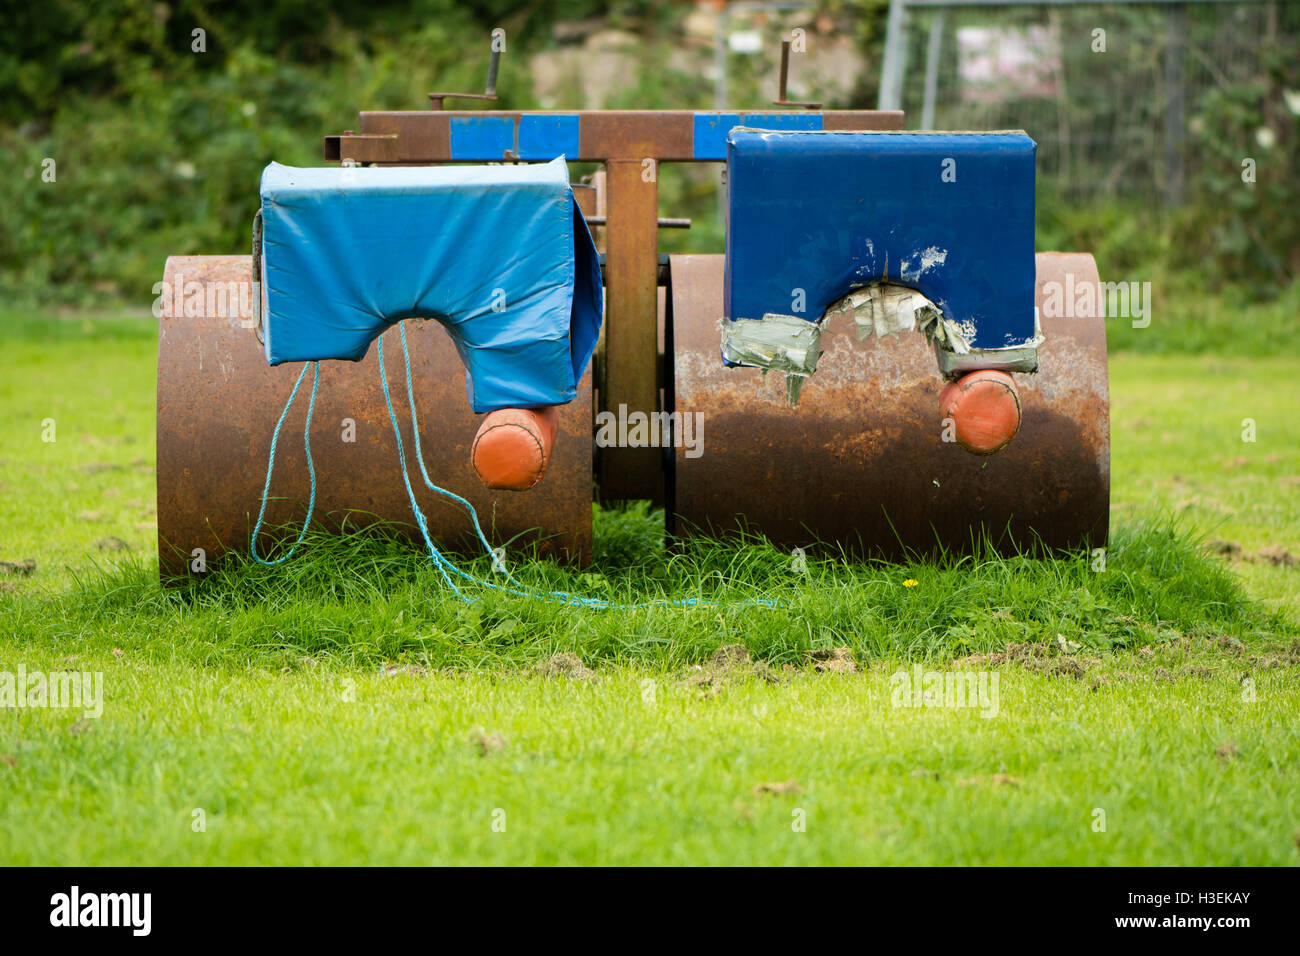 Rugby scrum machine from front. Old and rusty Rugby scrummage training device on pitch near Bath, in Somerset, UK - Stock Image